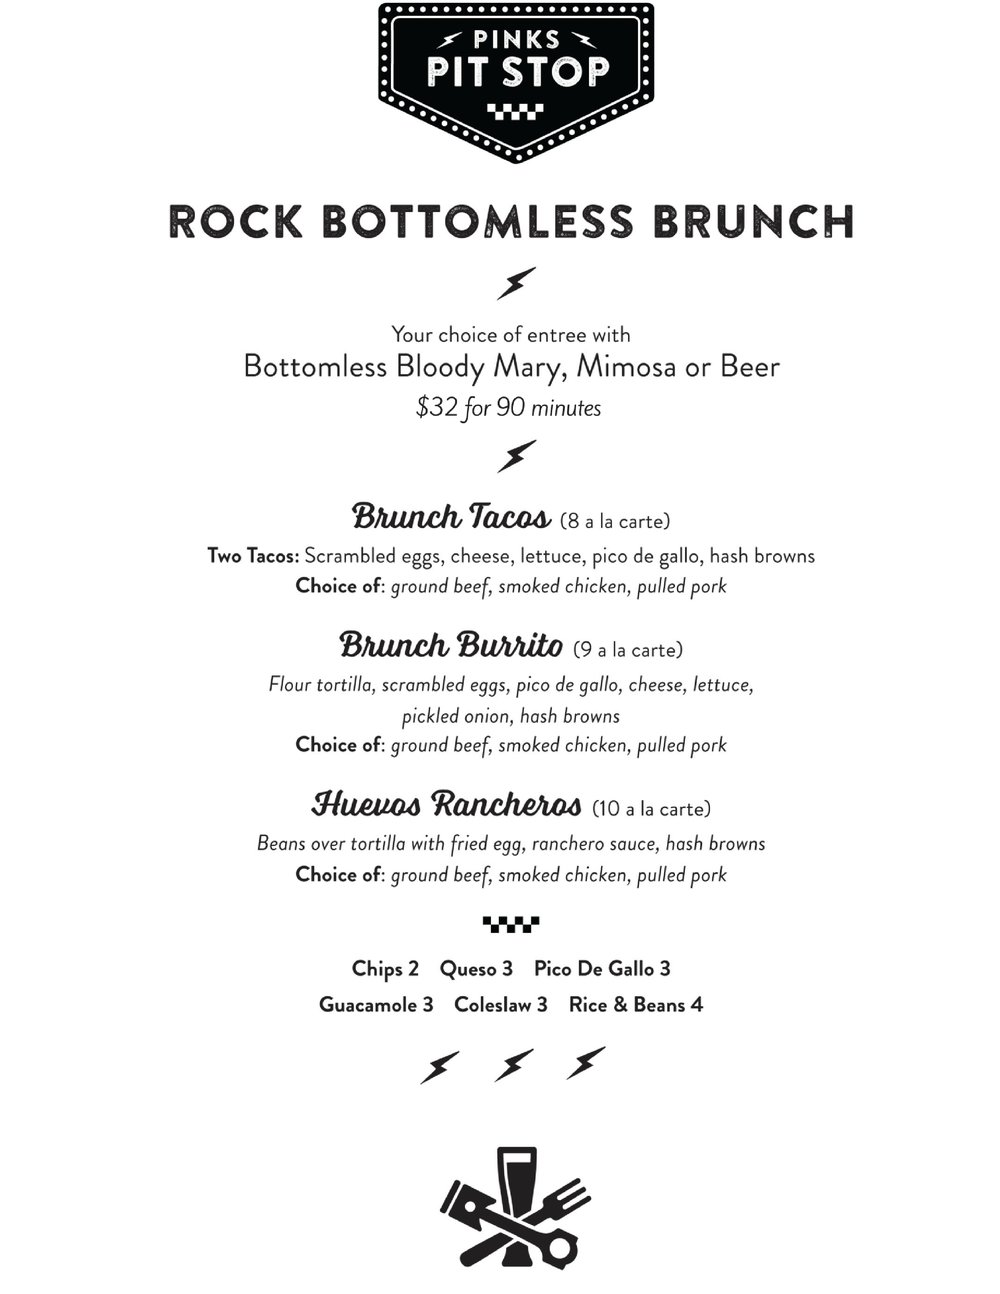 Pinks Brunch Menu